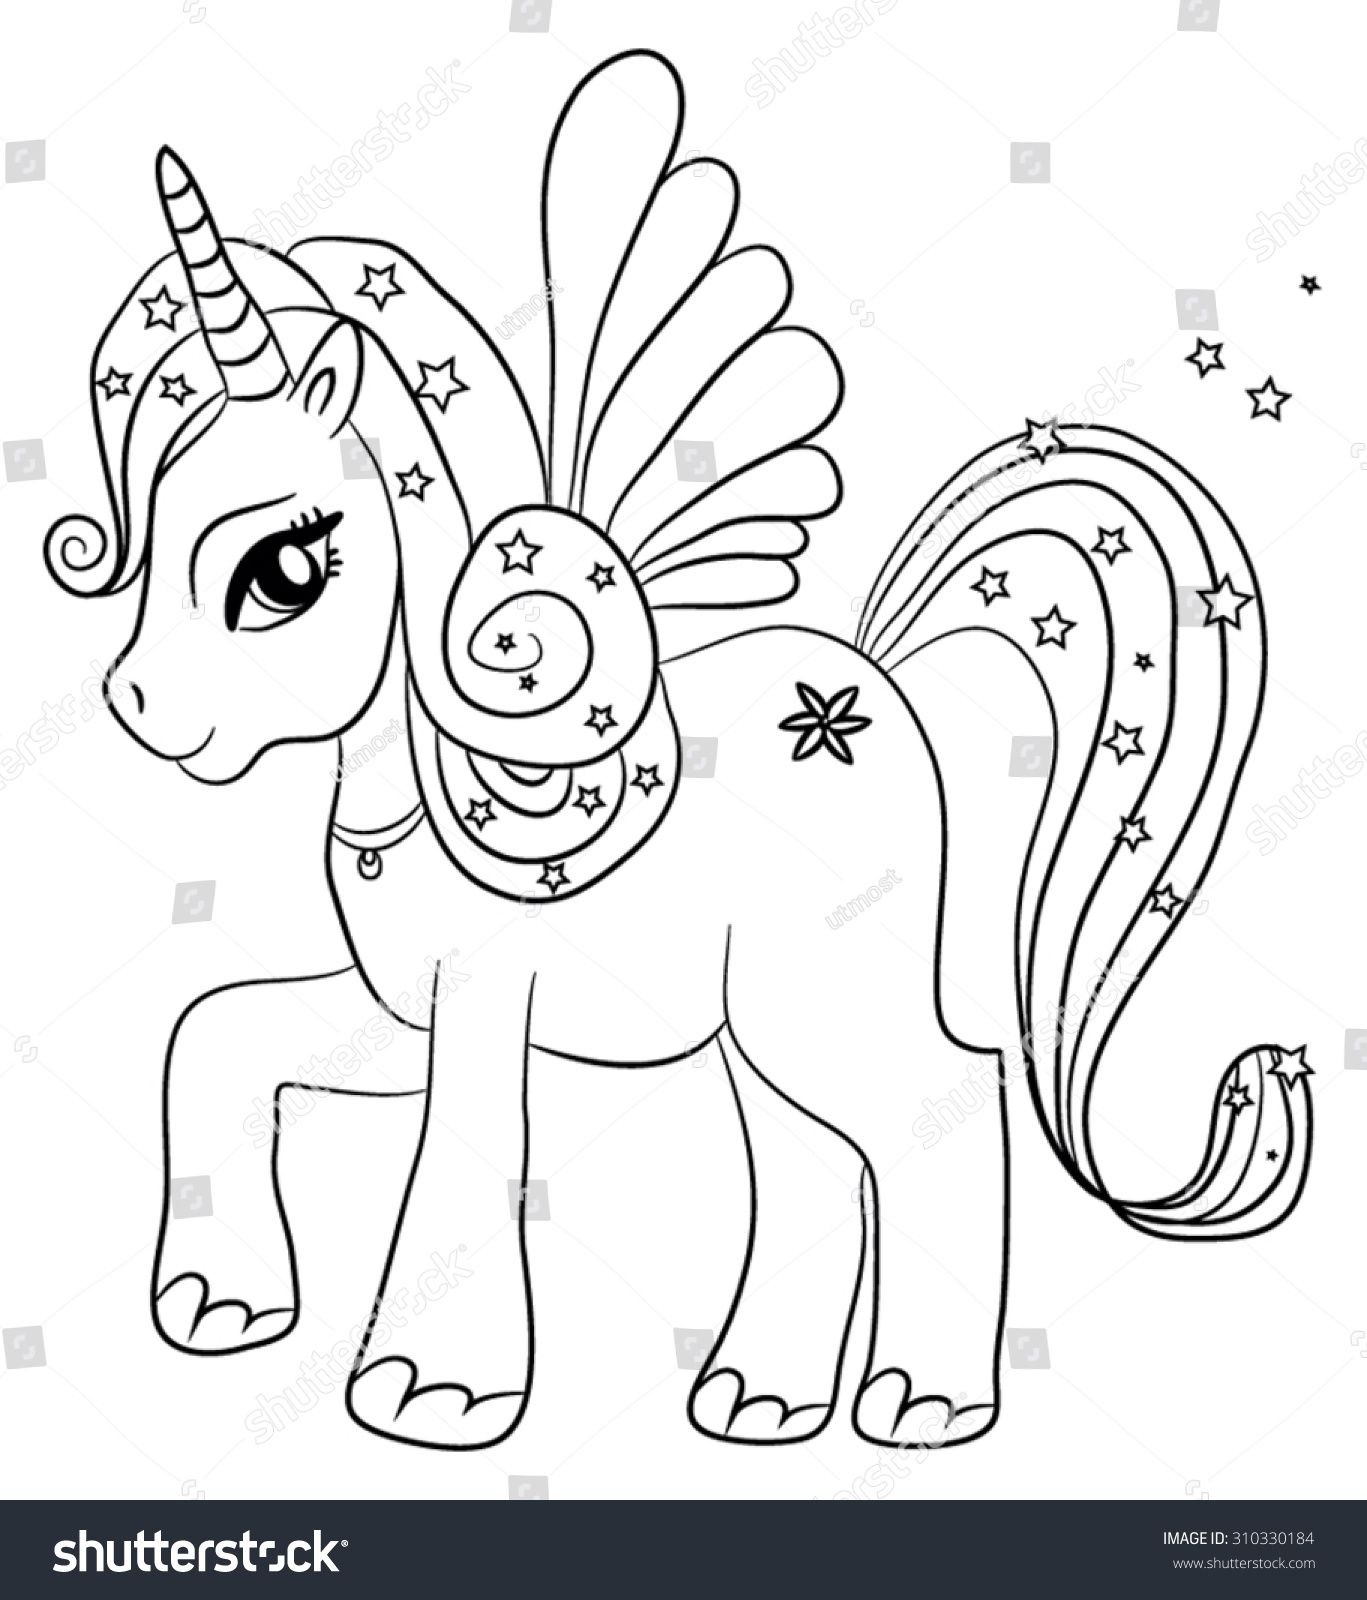 Cute cartoon fairytale unicorn - coloring page for kids ...